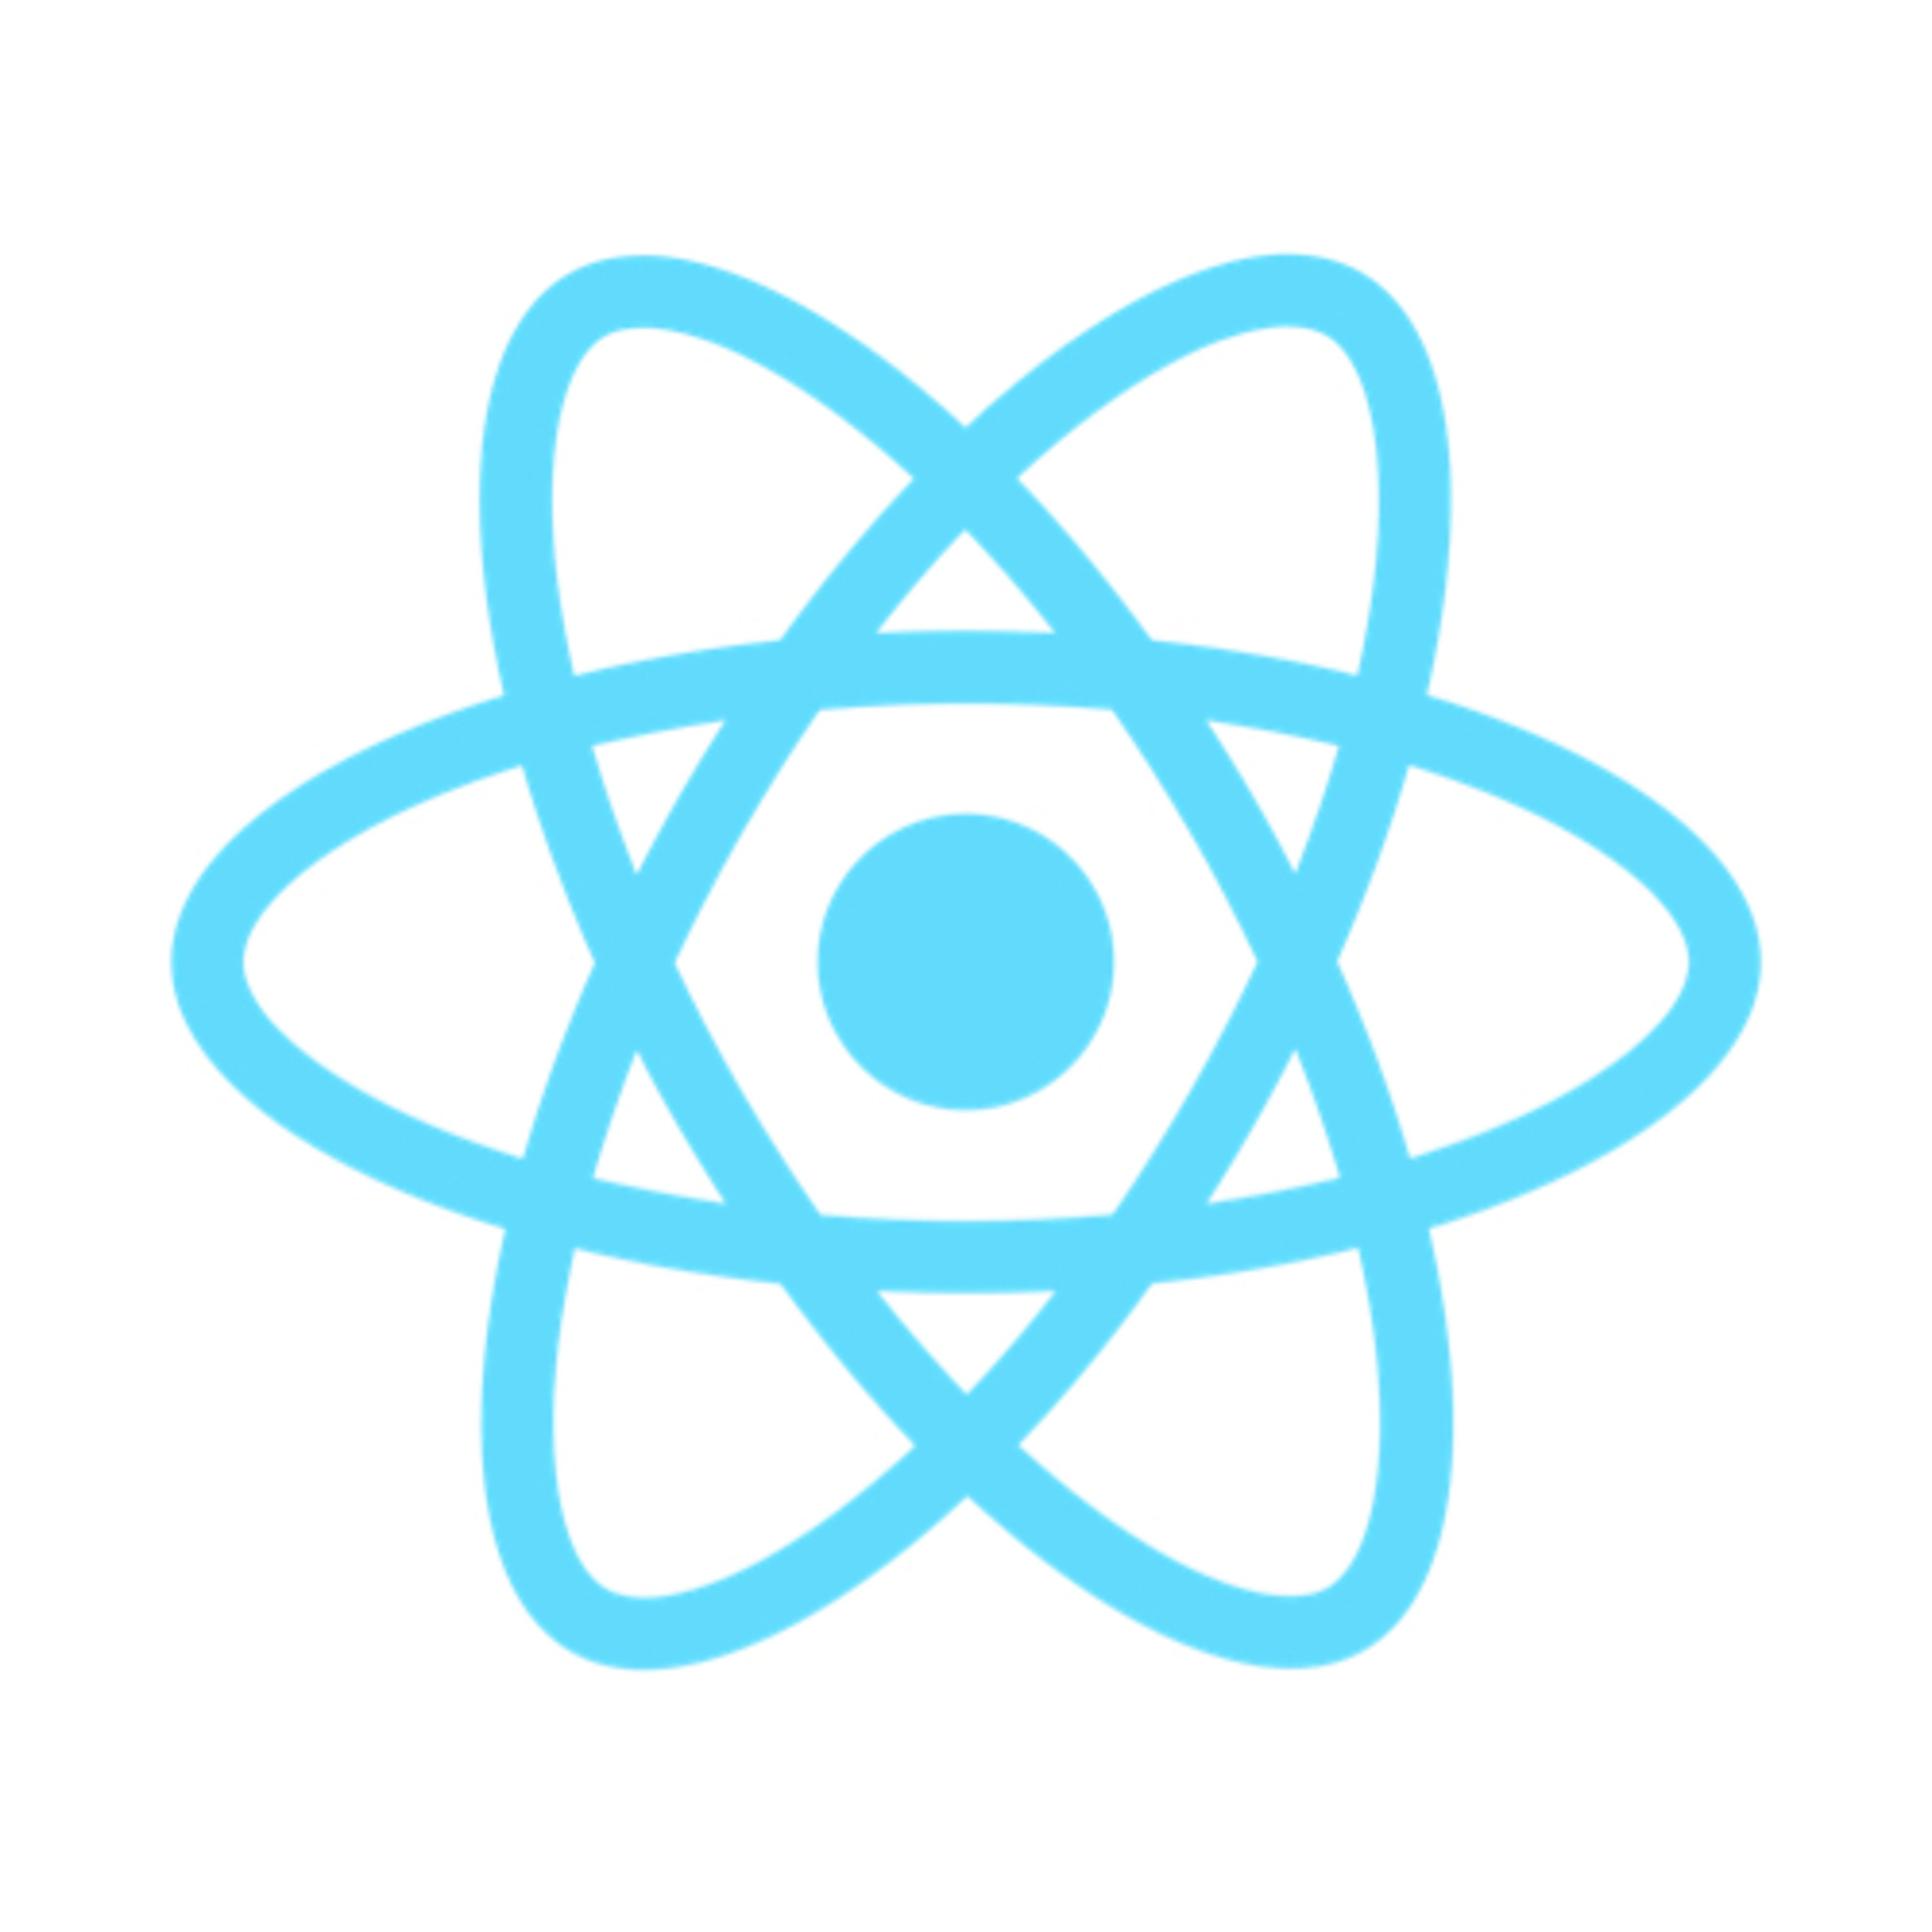 This Week in /r/reactjs | Listen Free on Castbox